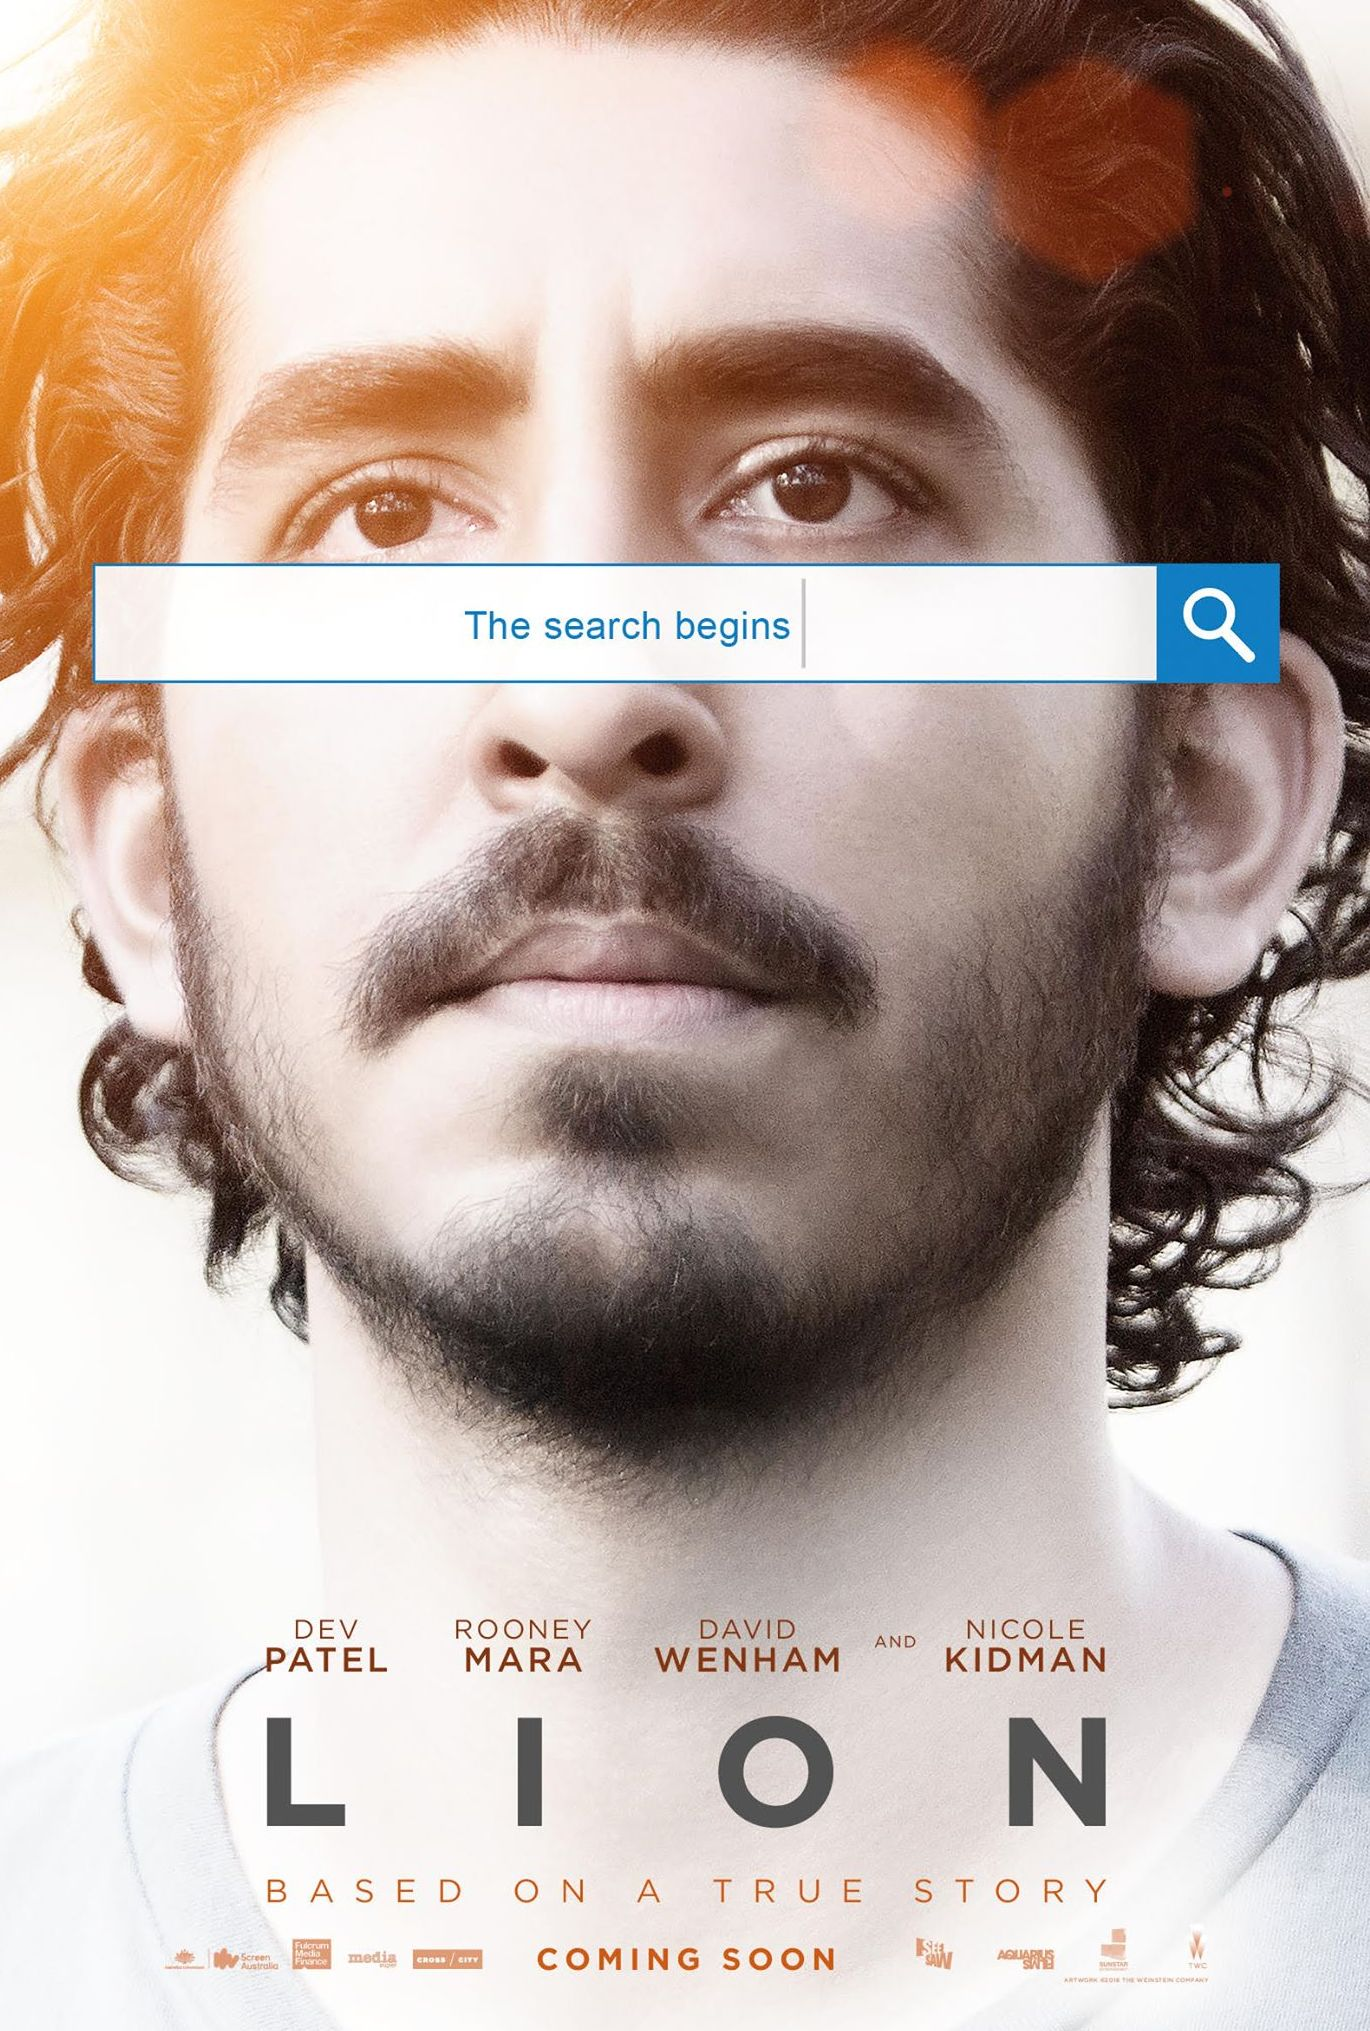 'Lion' (2016) Poster - Dev Patel and Rooney Mara